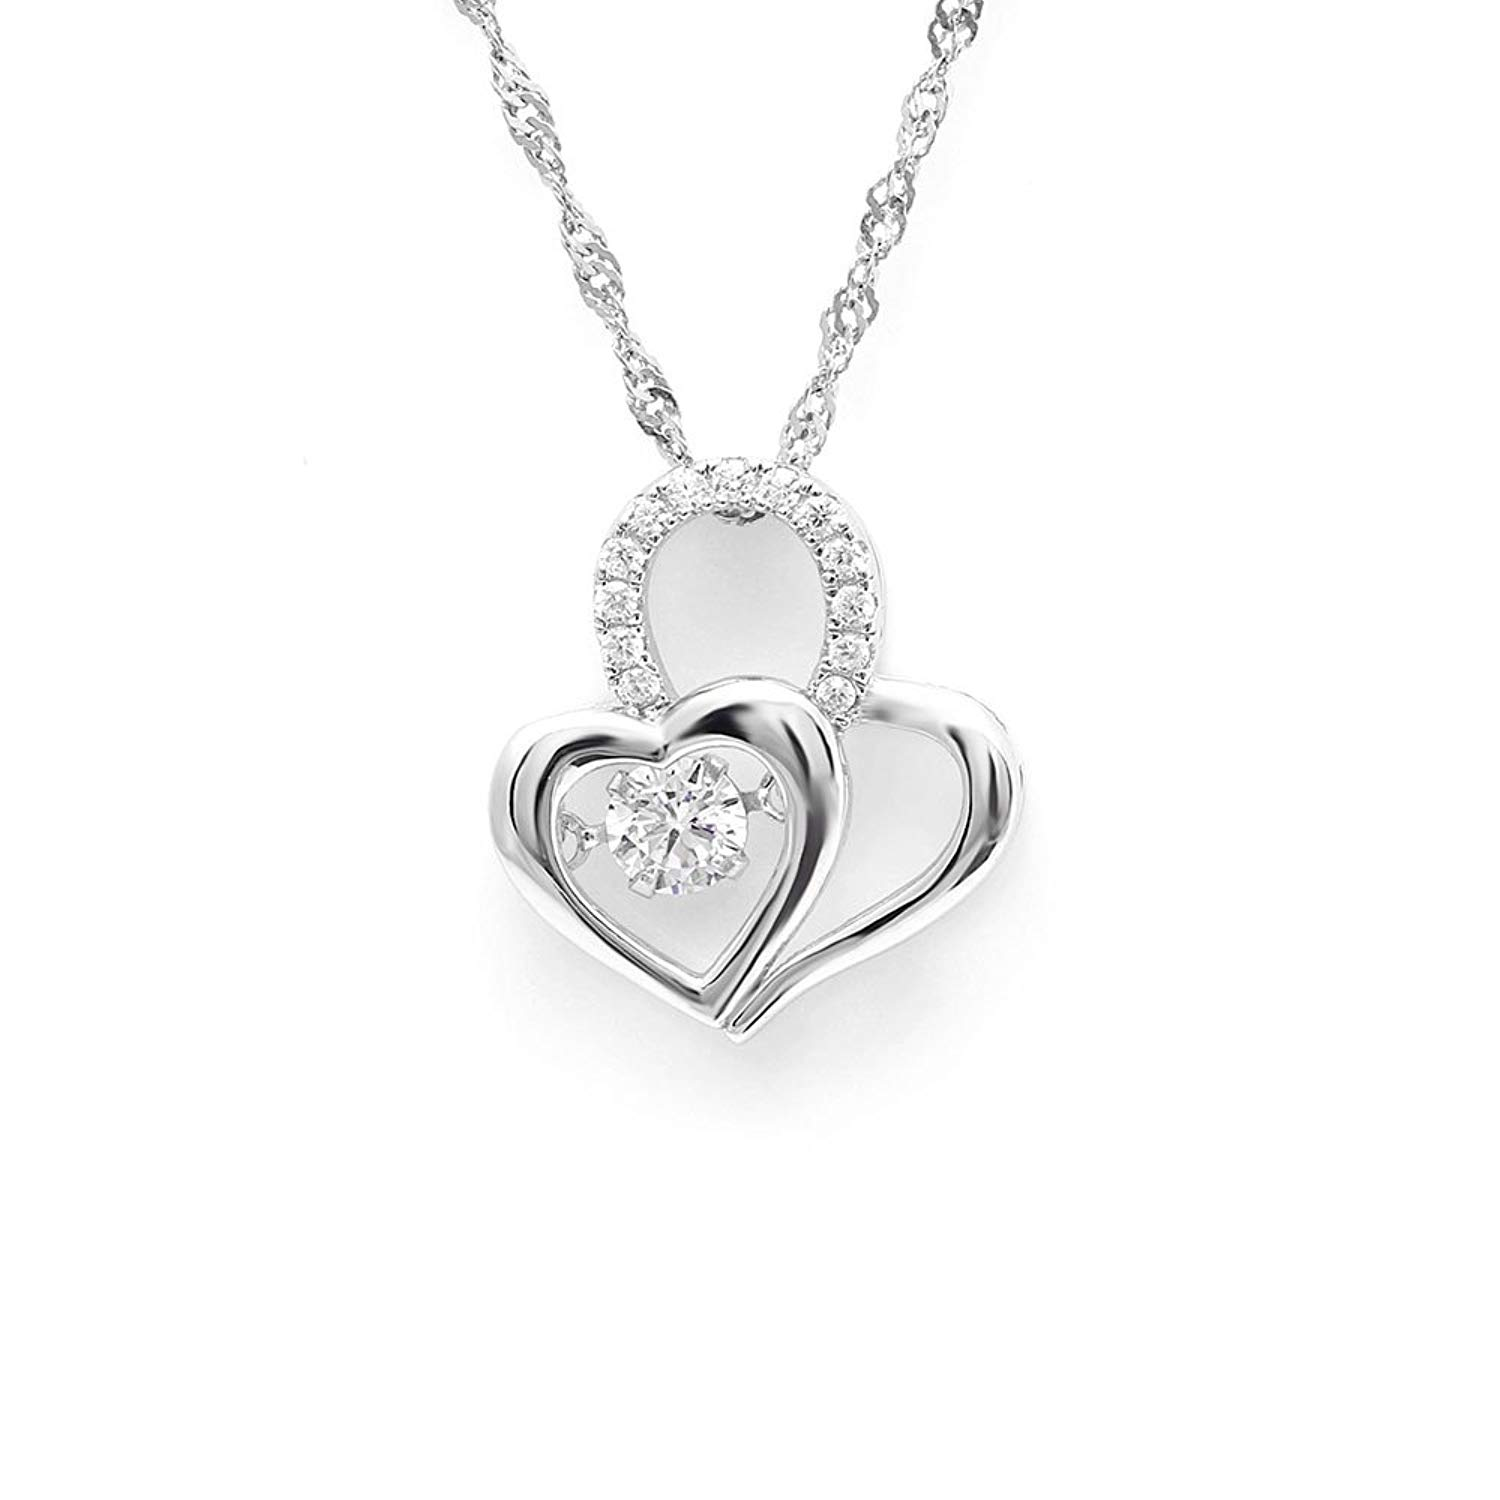 Ginger Lyne Collection Double Heart Dancing Stone Sterling Silver CZ Pendant Necklace Water Waves chain